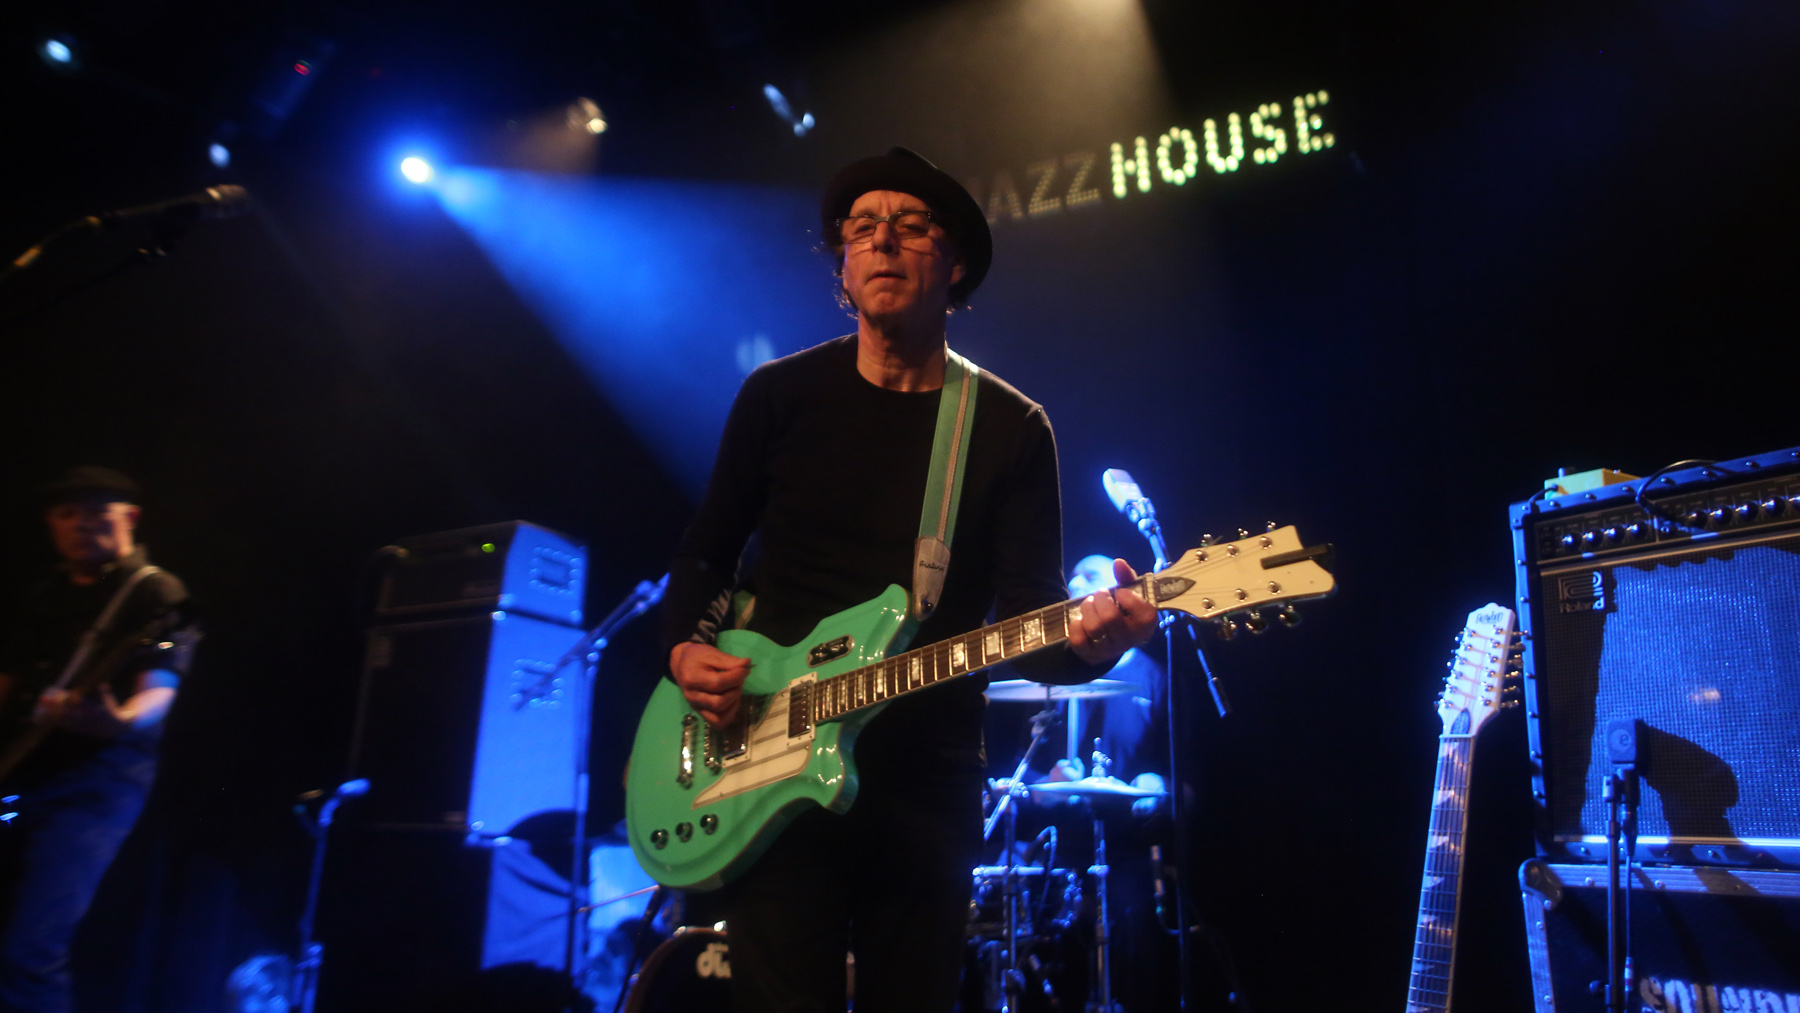 Wire at Jazzhouse